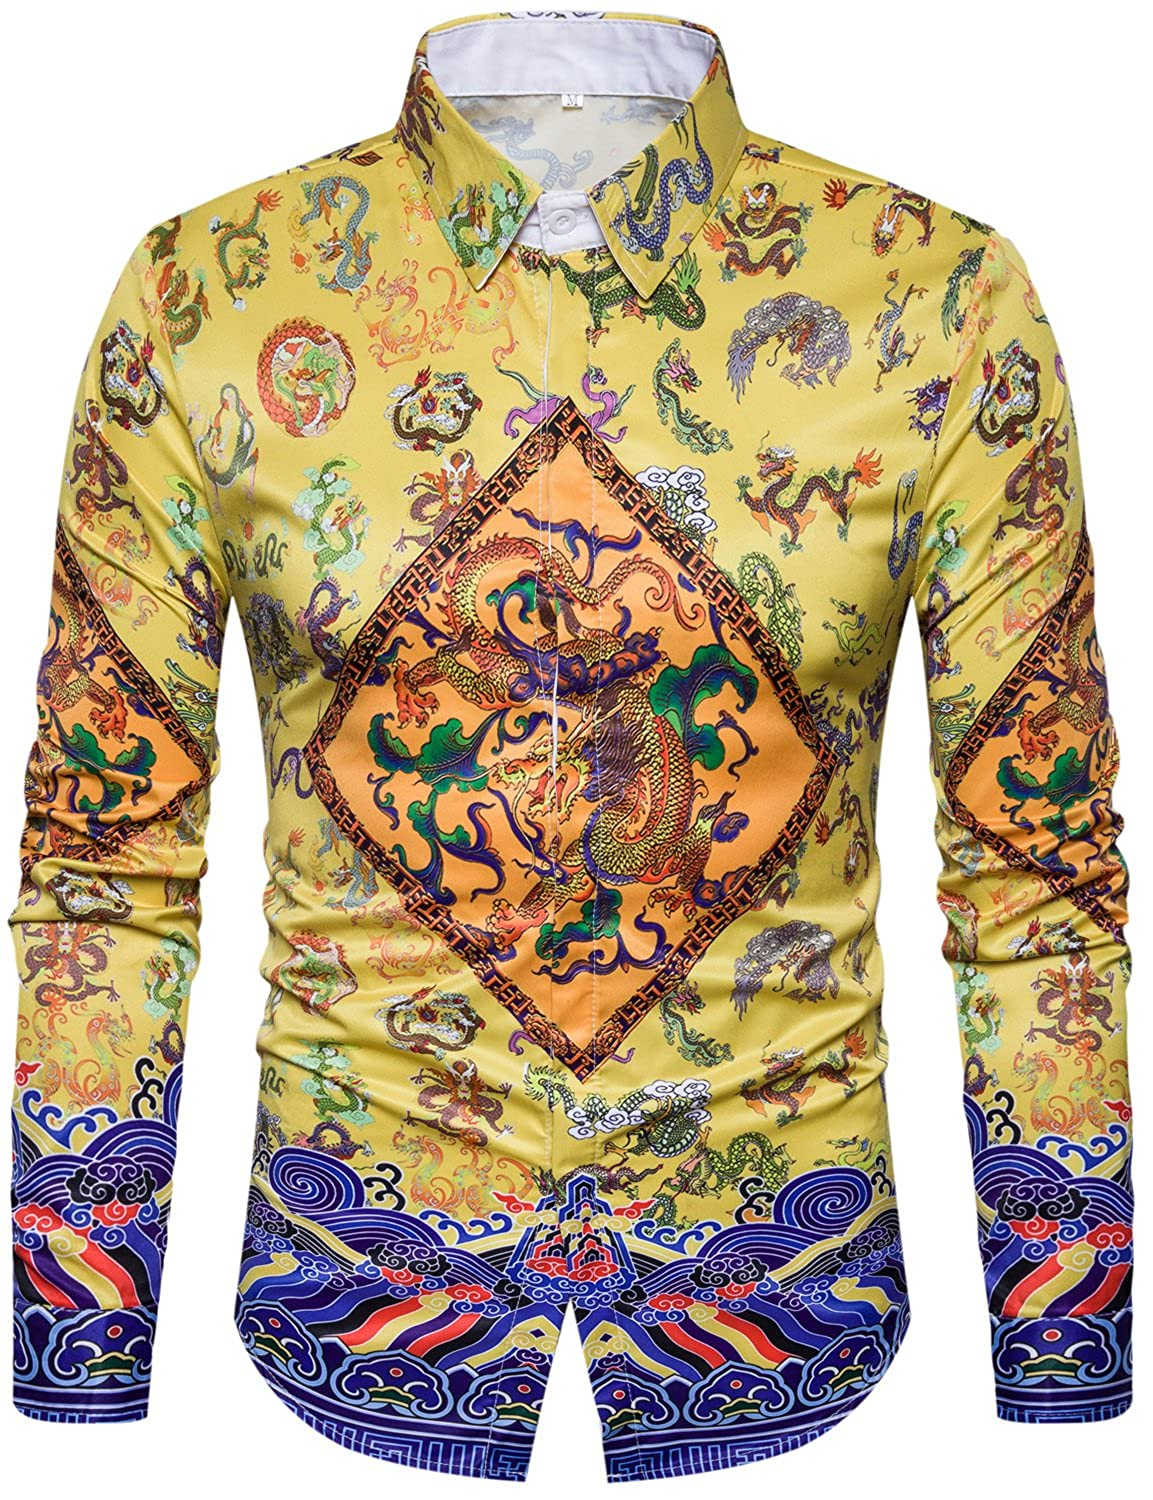 Double-side Printed 3D Digital Printing Multicoloured Design inspiration   Ancient China Emperor Robes Chinese Dragon  Luxury Palace Royal Court 6c8816939